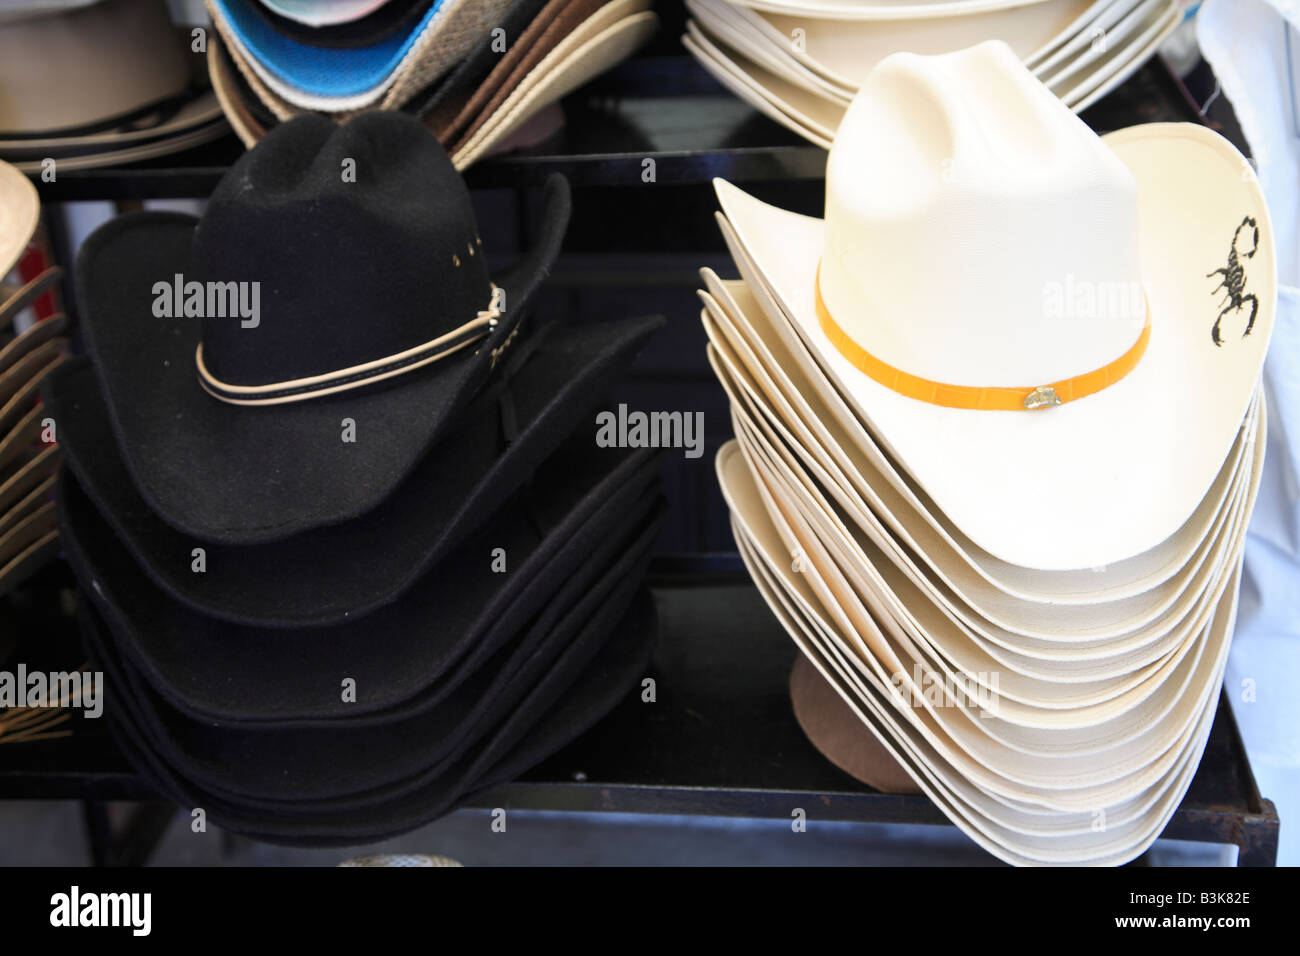 Cowboy hats for sale in Market in Mexico City Stock Photo  19477766 ... 67cfcb46085